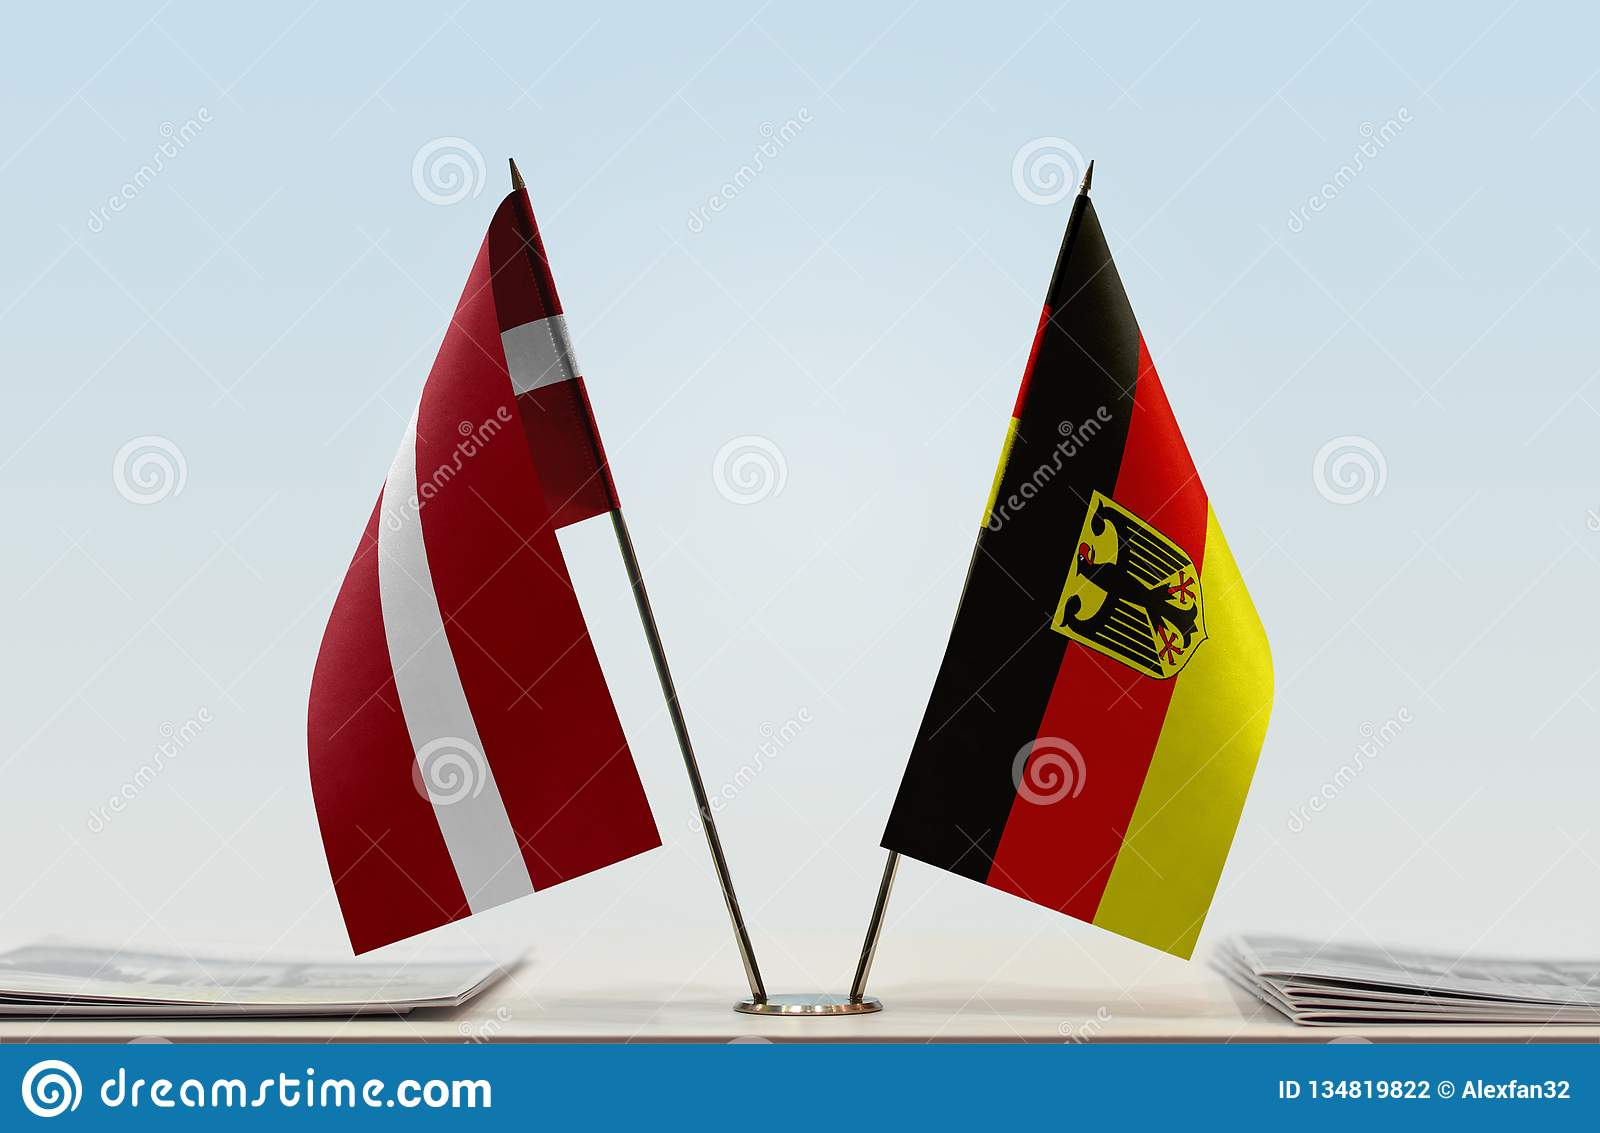 Flags of Latvia and Germany